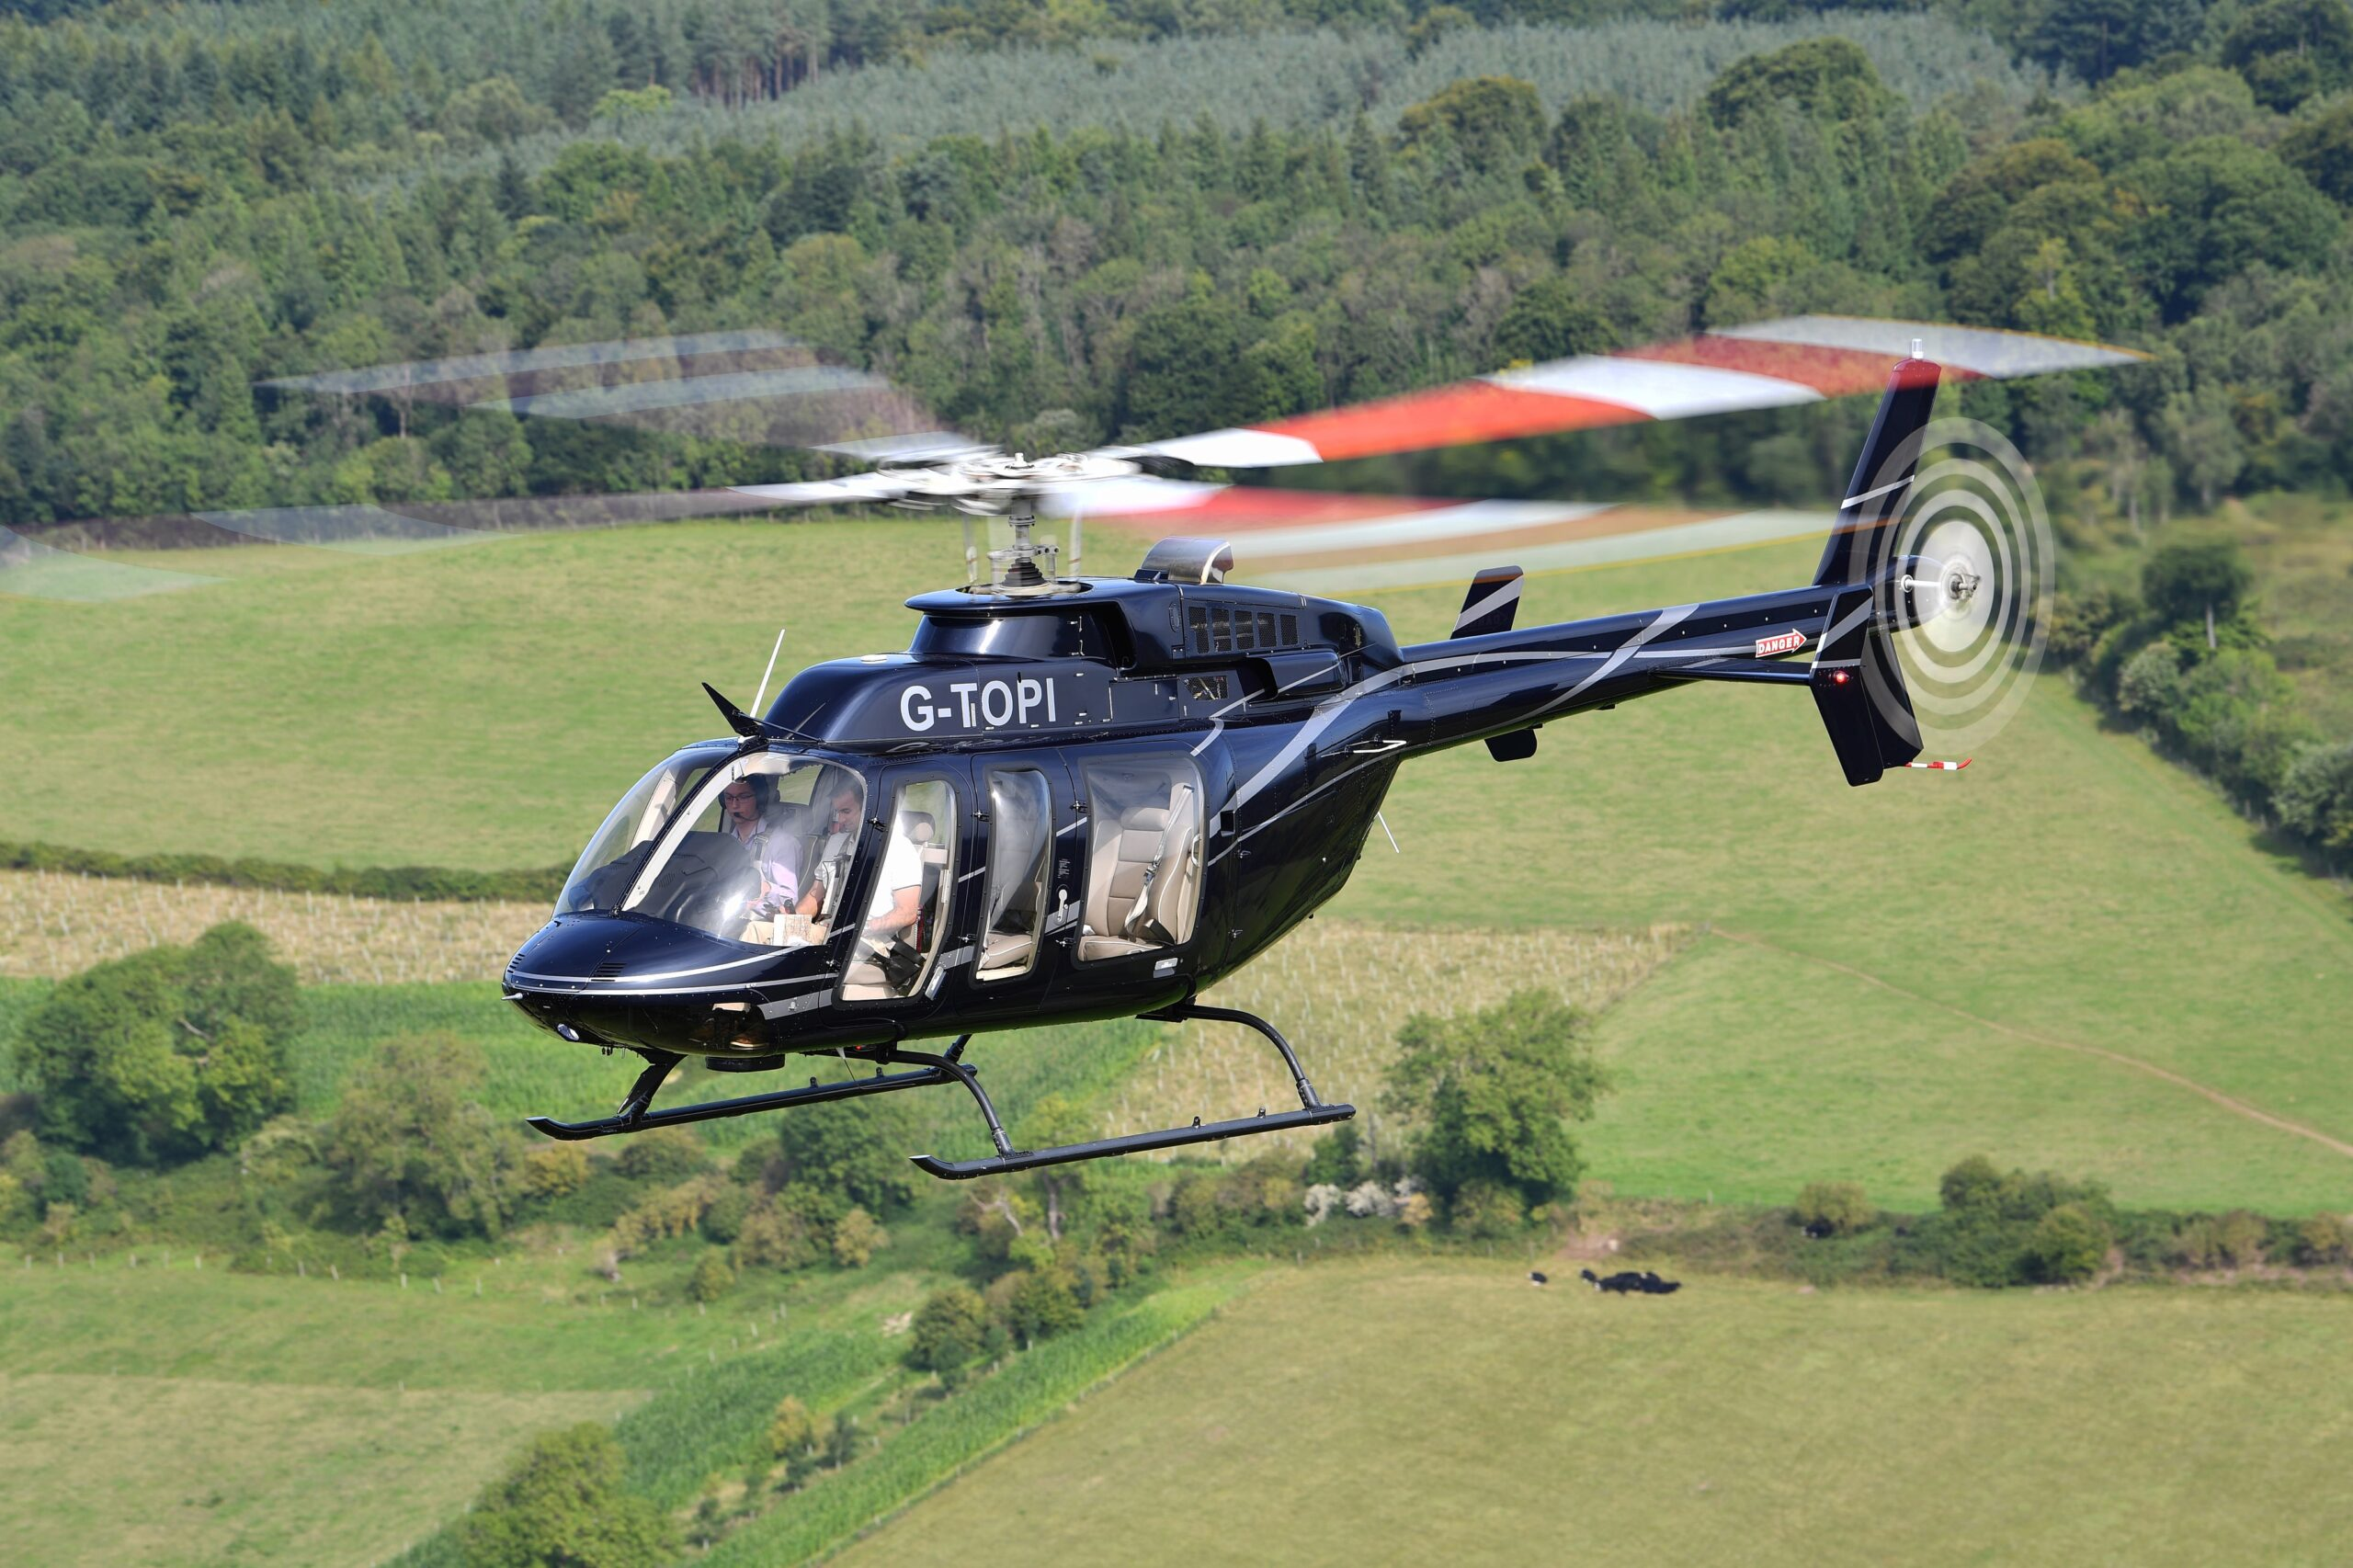 Helicopter Charter Hire Oxfordshire